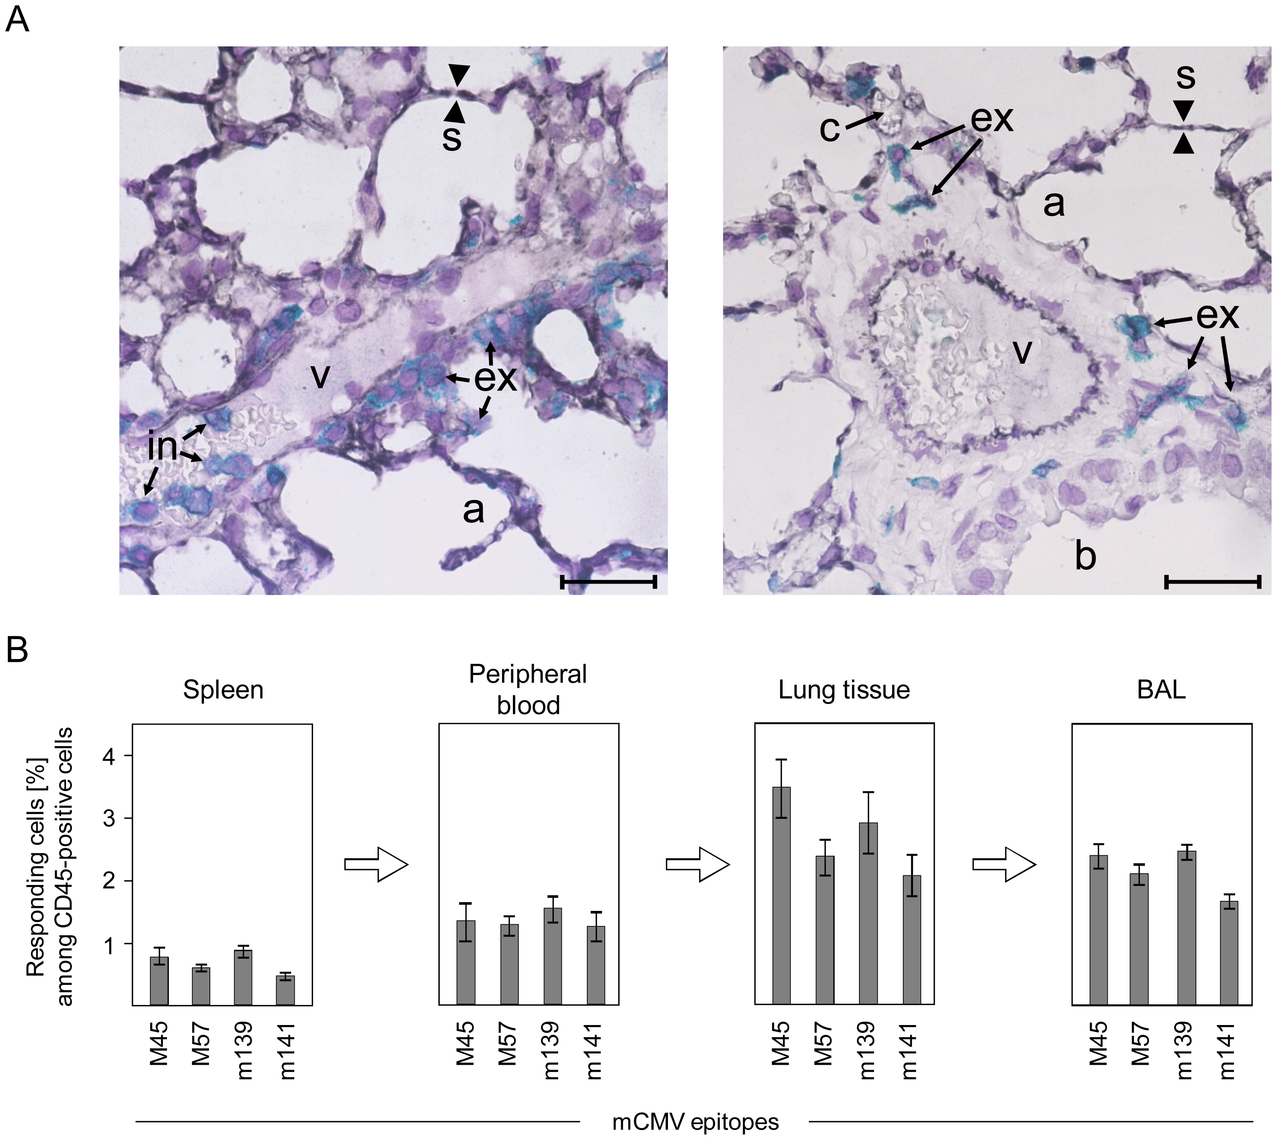 Activated virus epitope-specific CD8 T cells transmigrate from the vascular compartment into lung interstitium and alveolar epithelium.